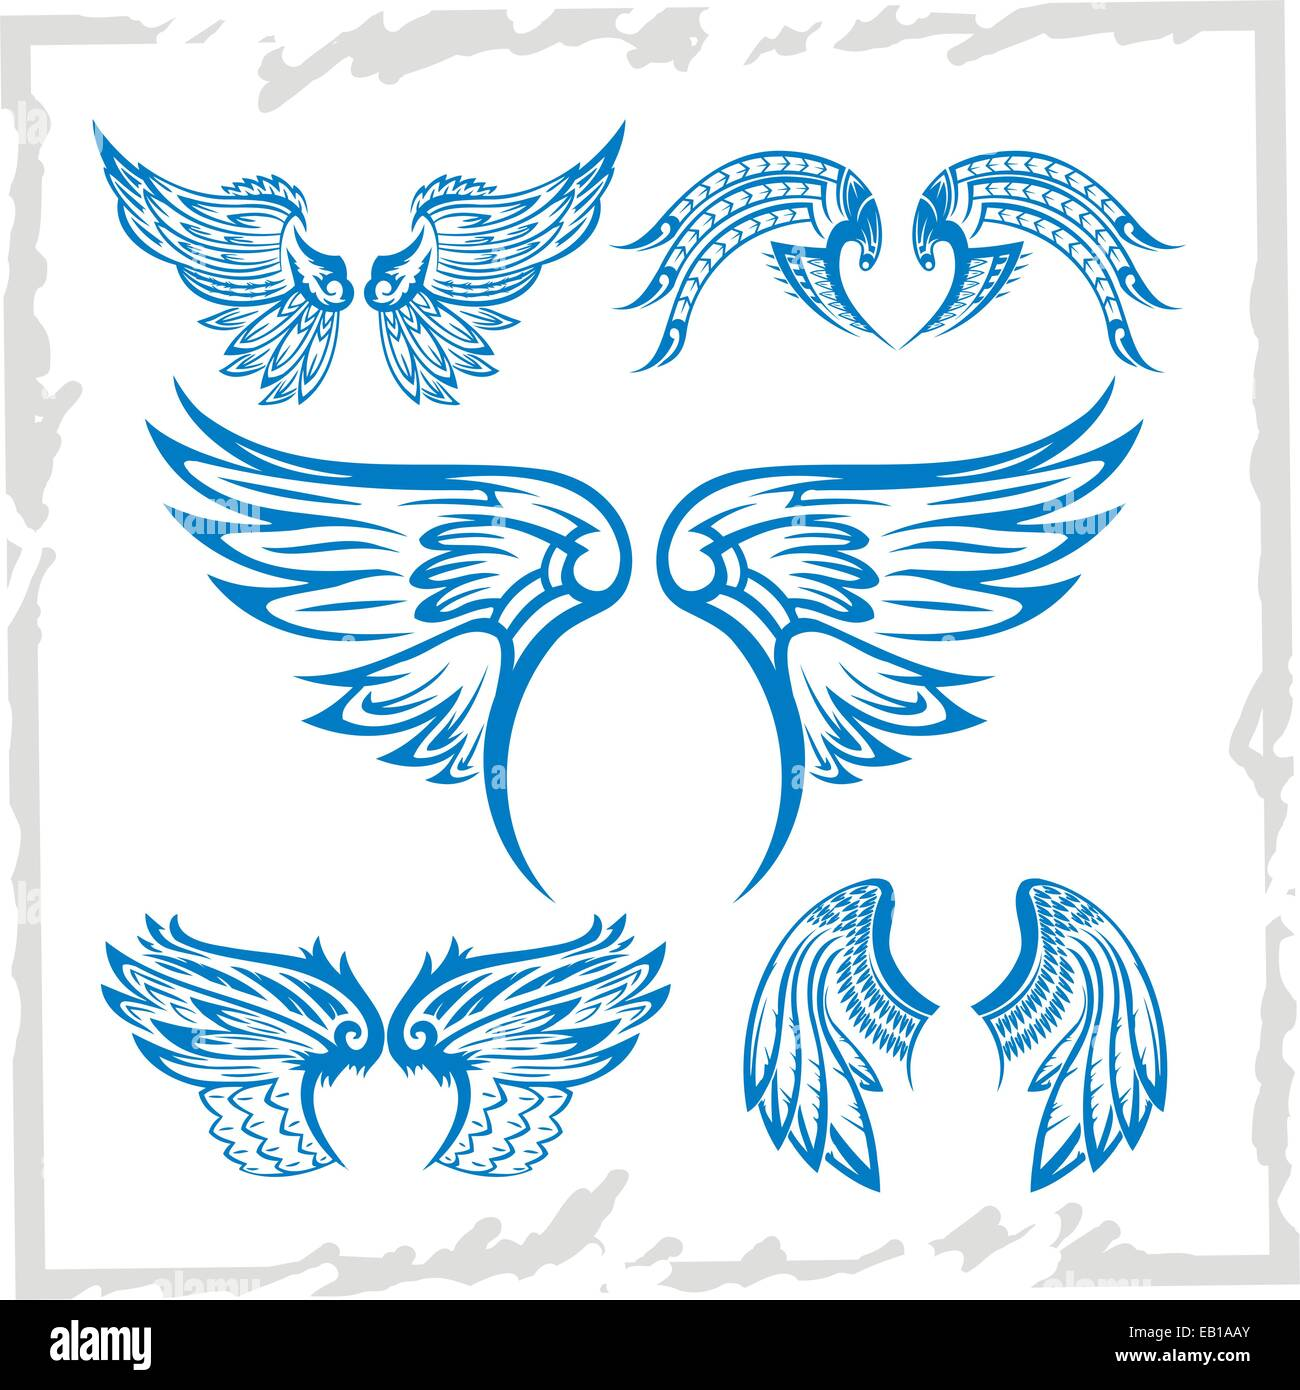 Vector Wings Set. Vinyl-ready illustration. - Stock Image